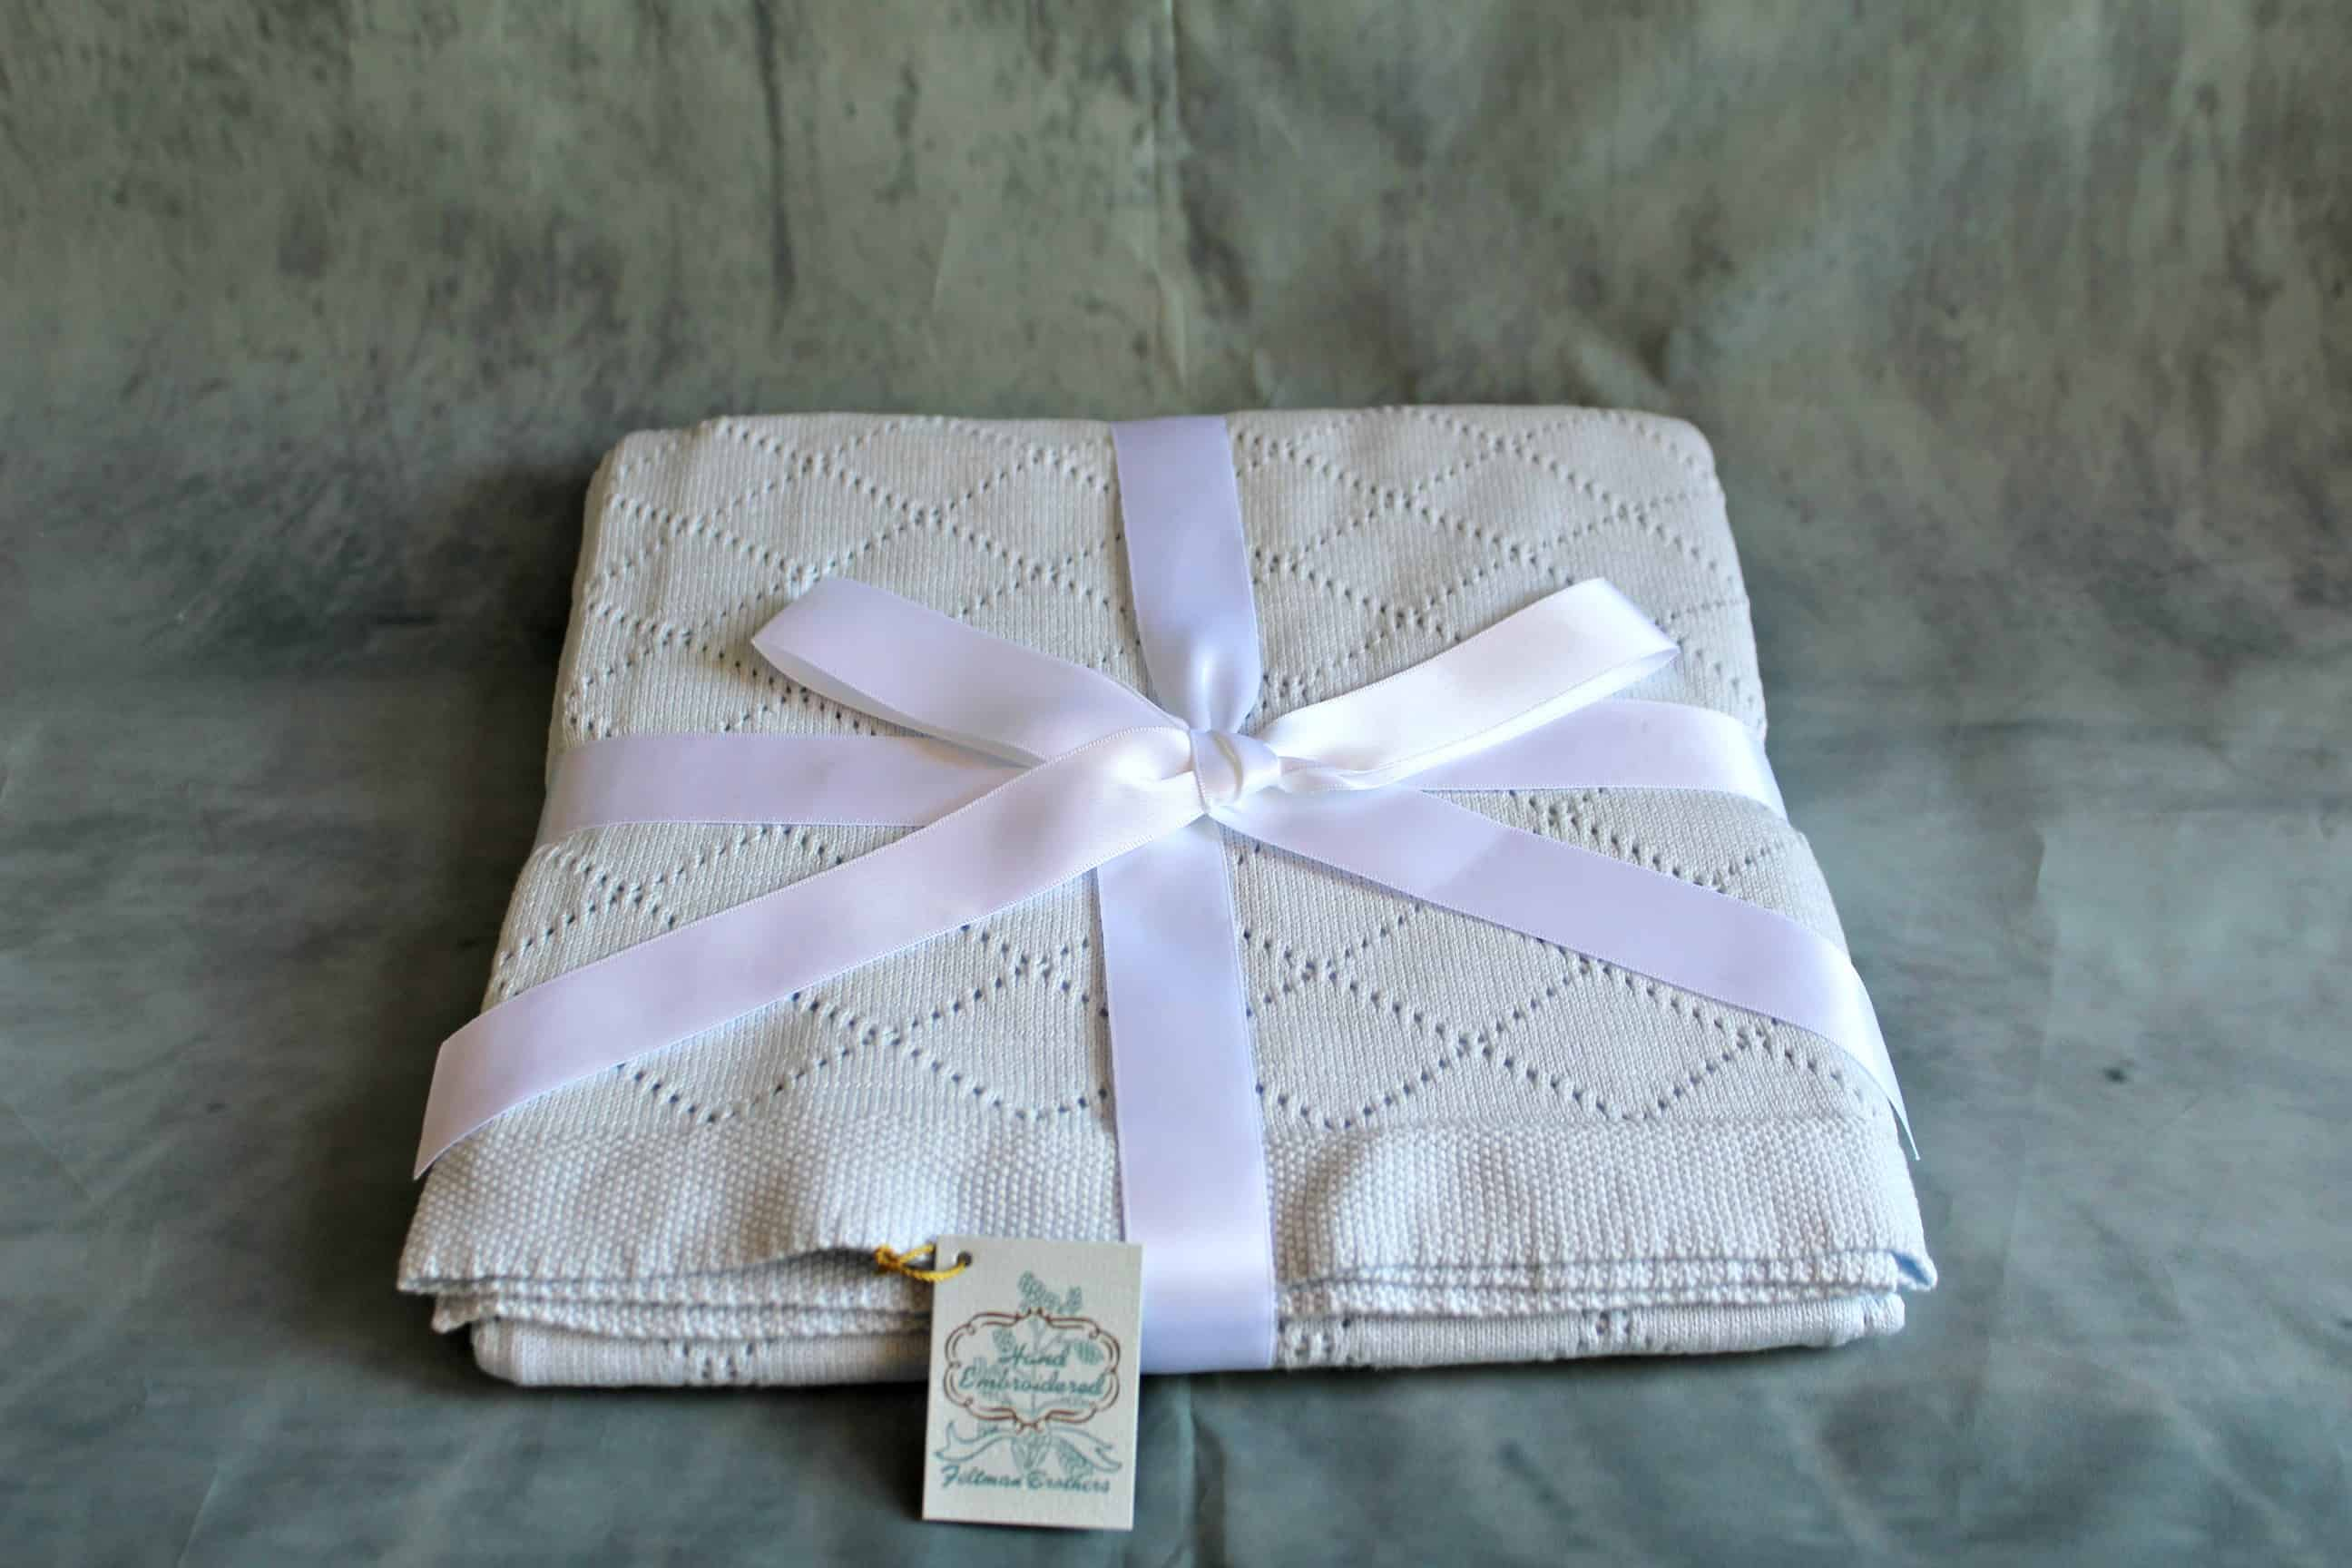 Feltman Brothers Blankets are perfect baby shower gifts.